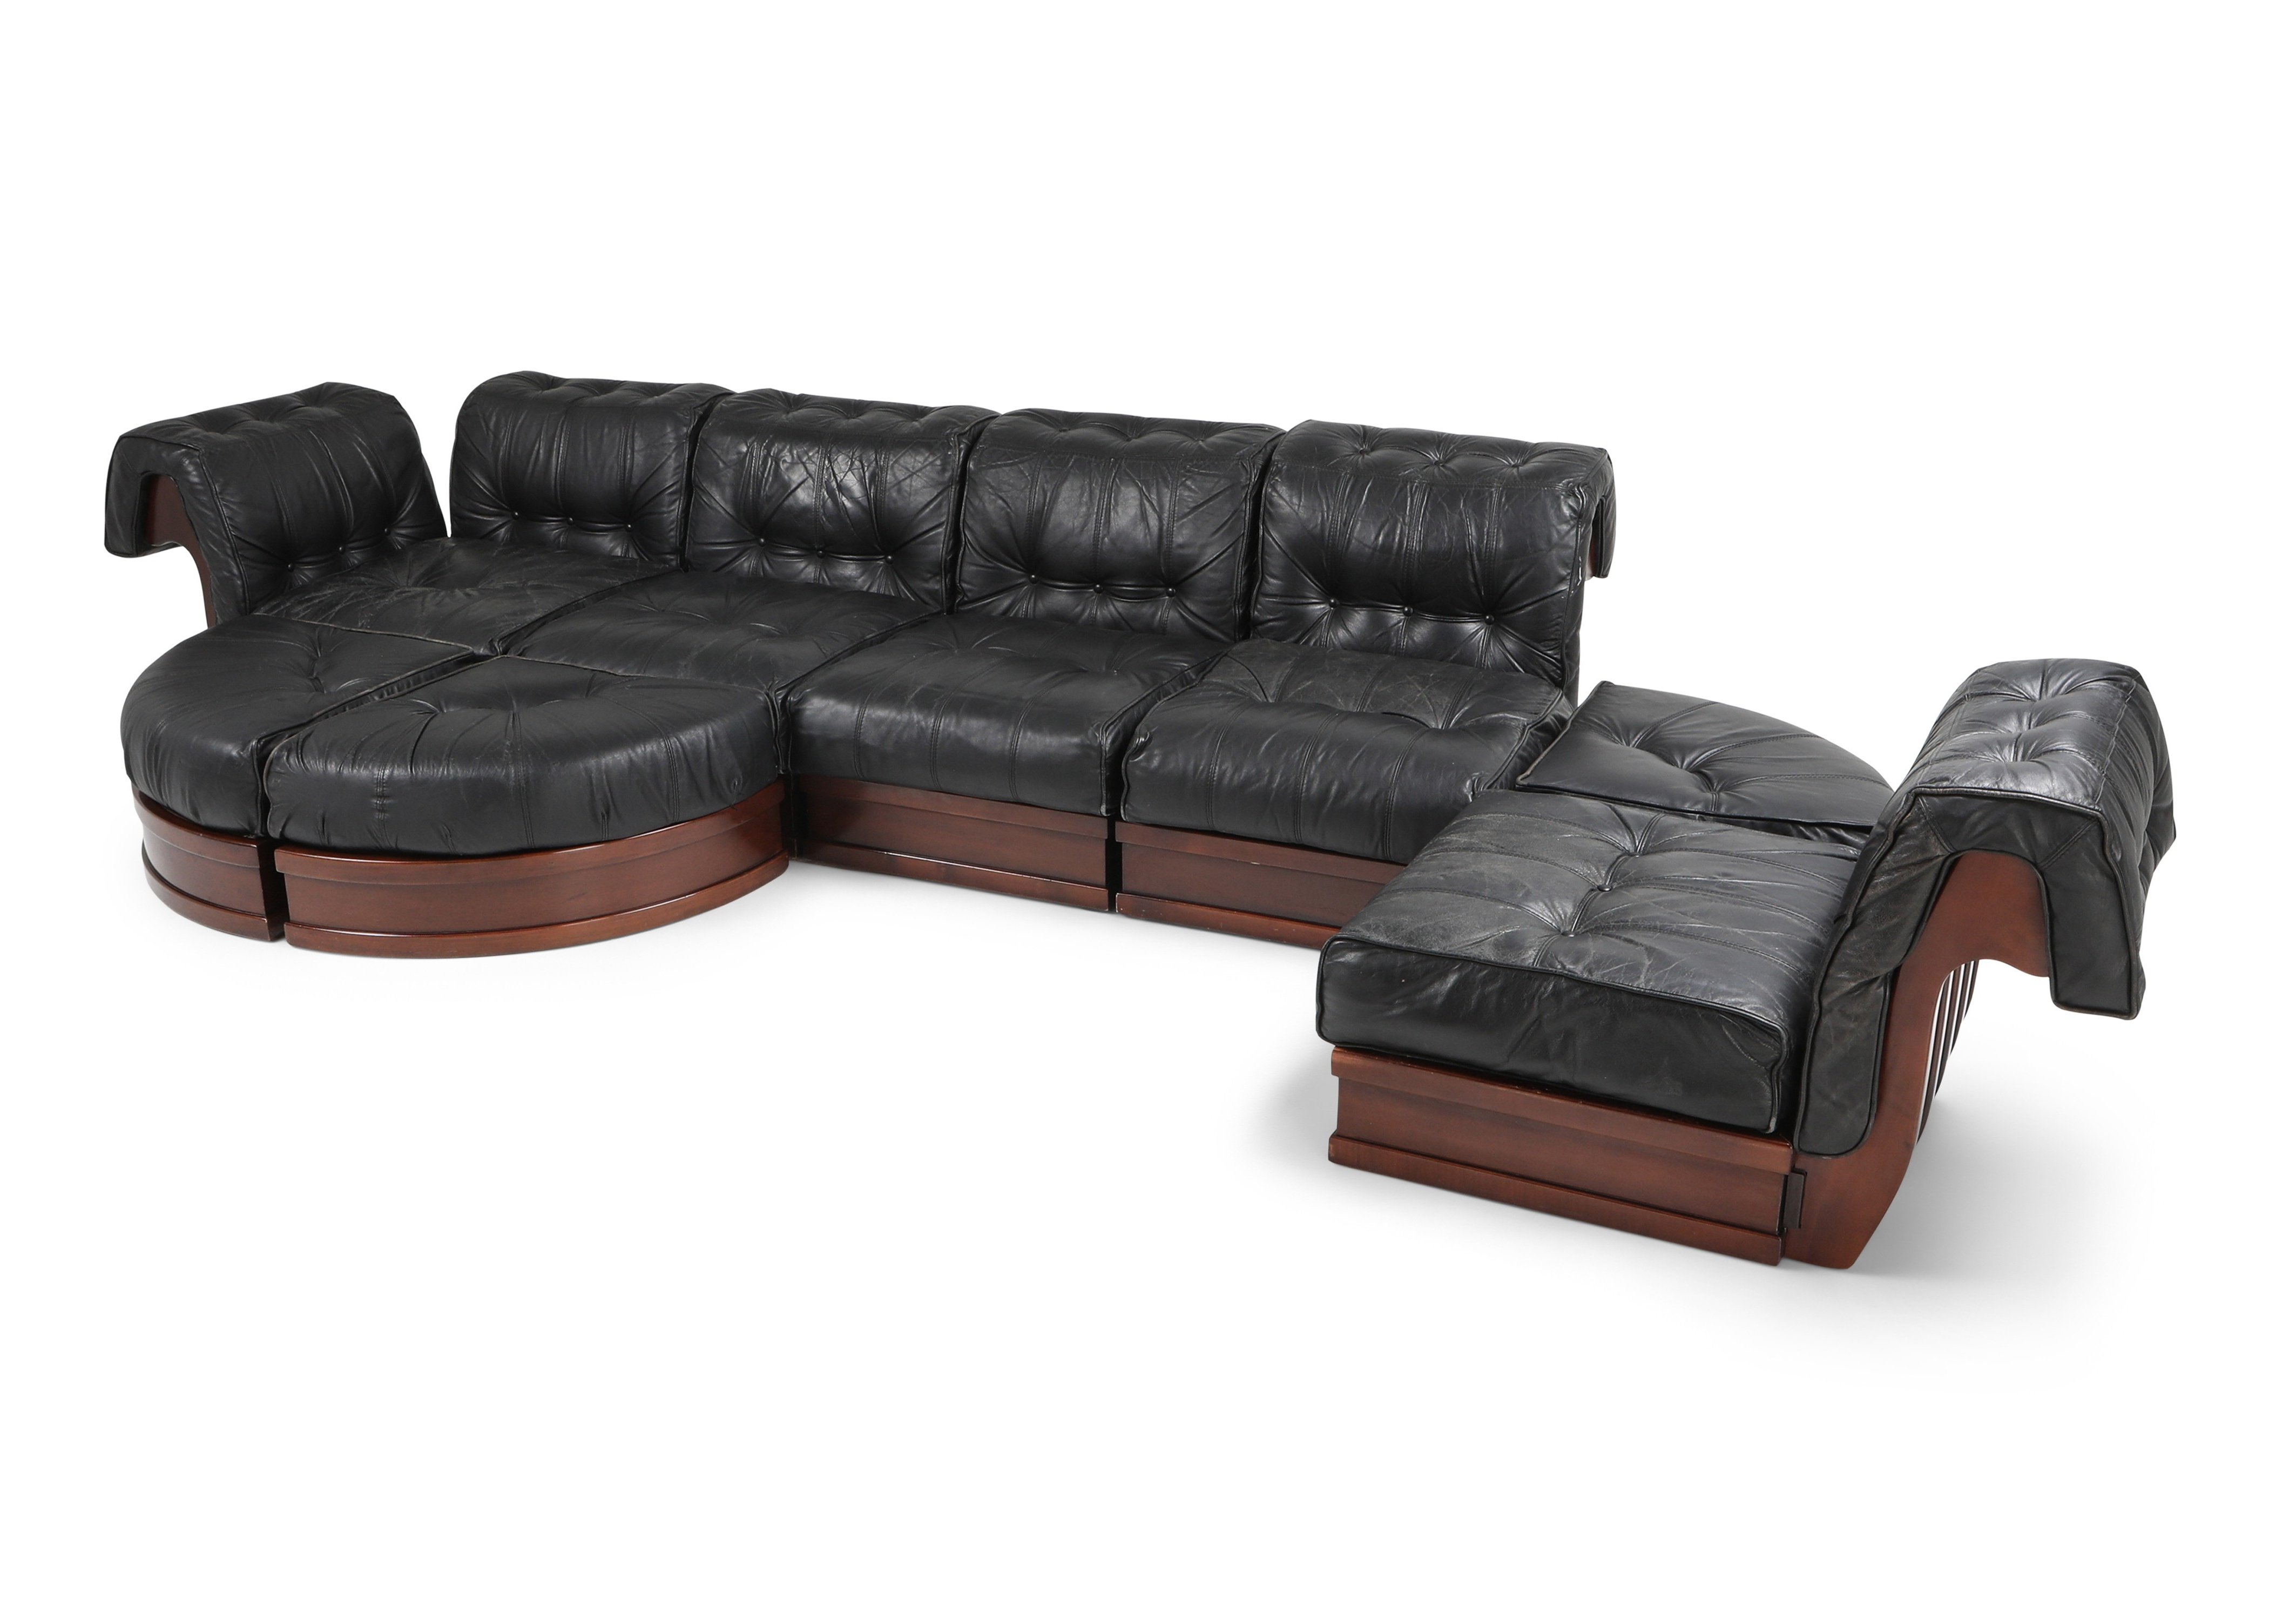 Sectional Sofa In Black Leather Mahogany By Luciano Frigerio 1970s